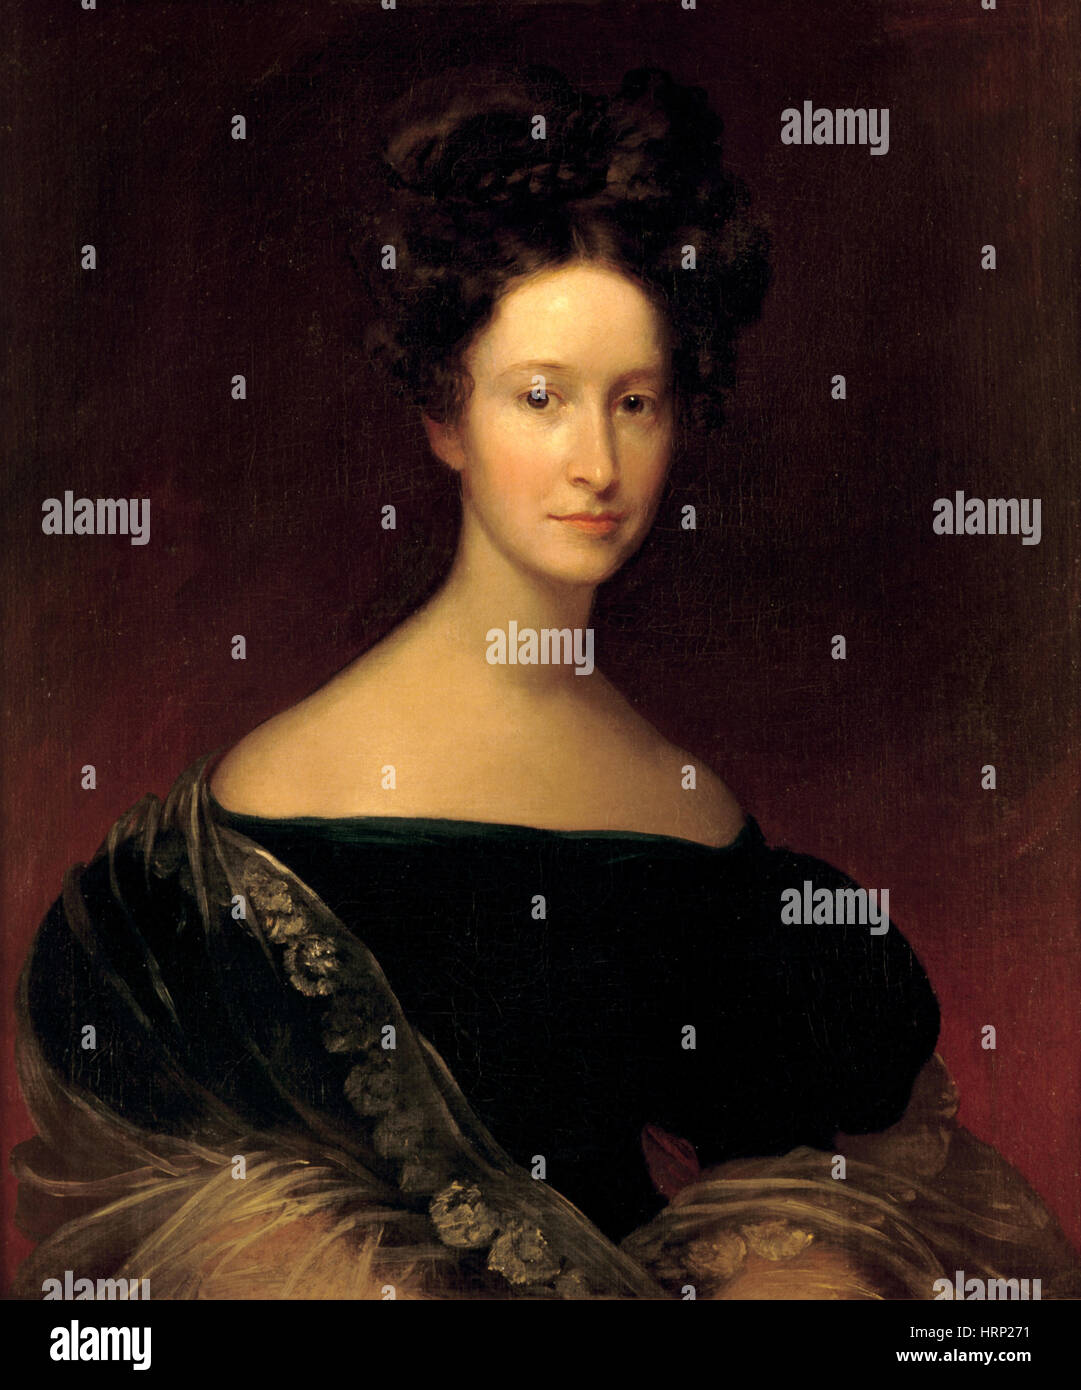 Emily Donelson, First Lady - Stock Image